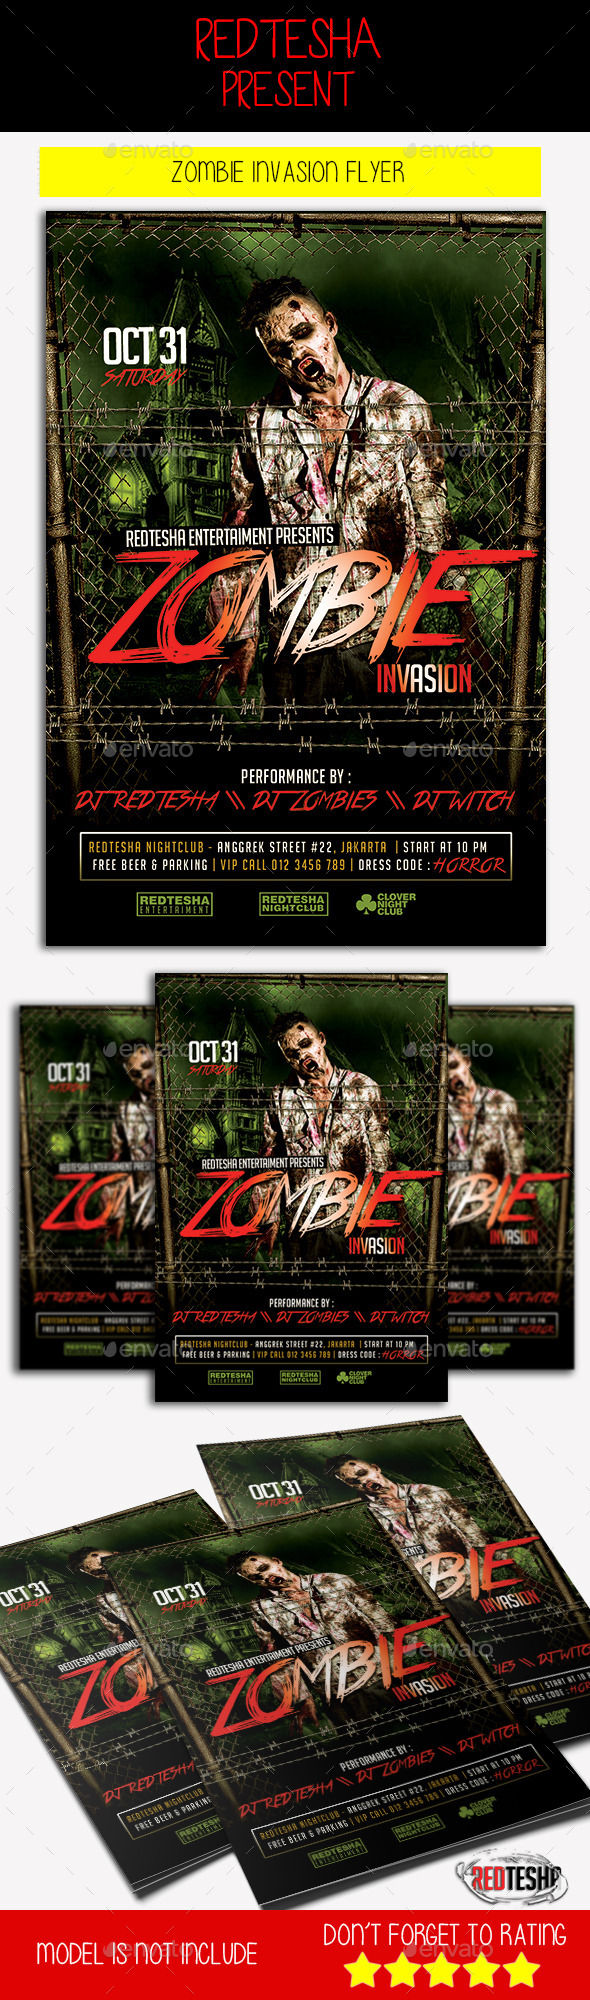 Zombie Invasion Flyer by Redtesha (Halloween party flyer)